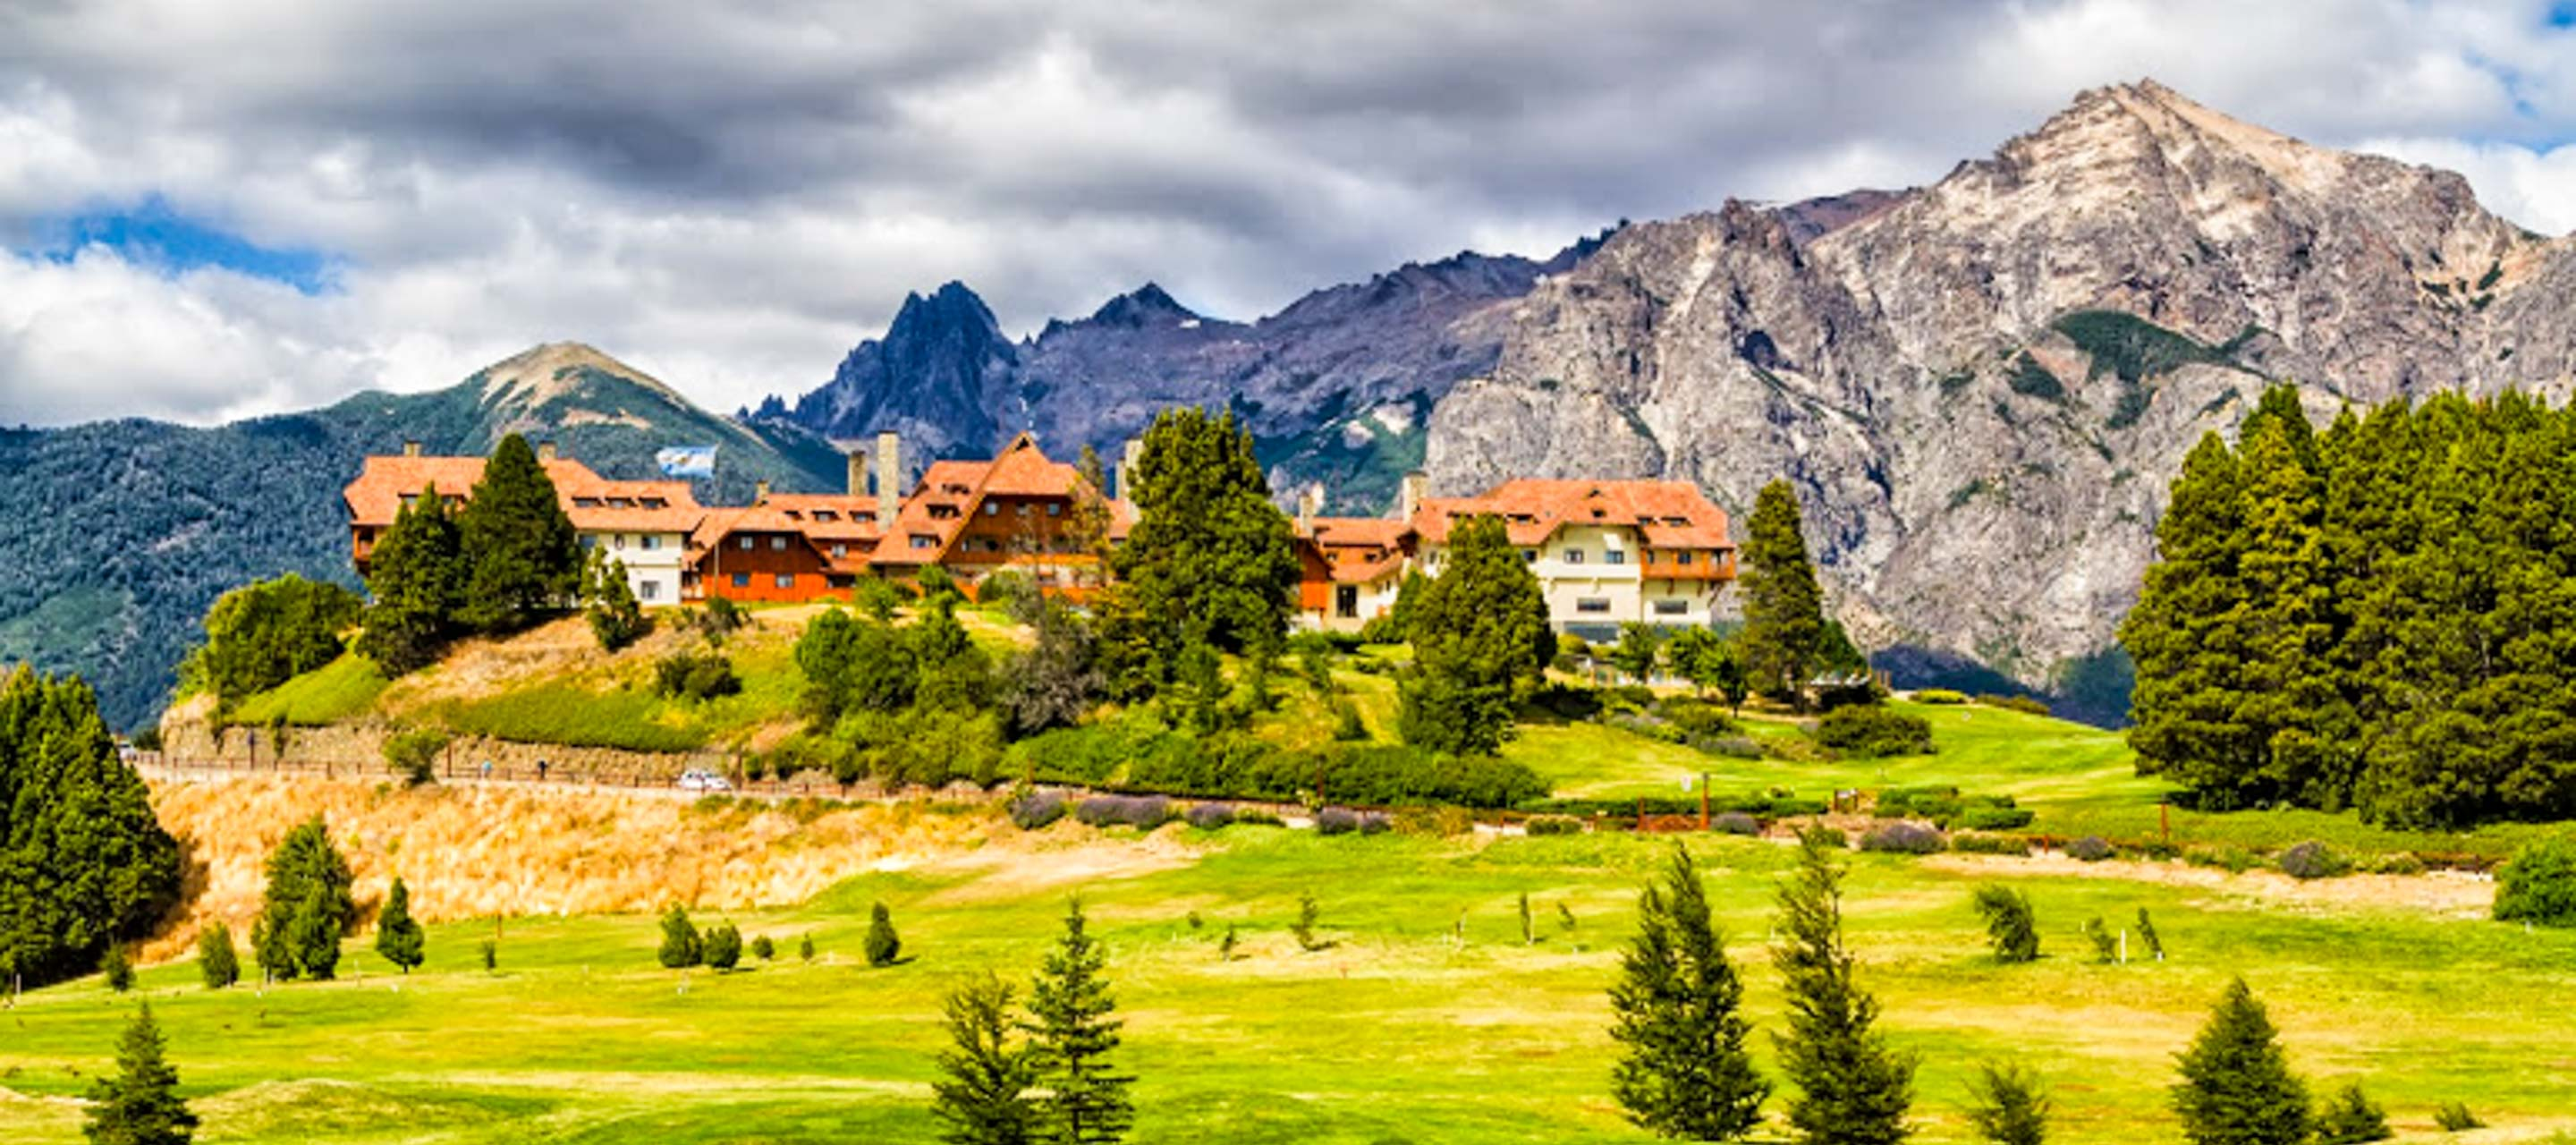 Golf course near mountains in Buenos Aires on south america Golf Tours